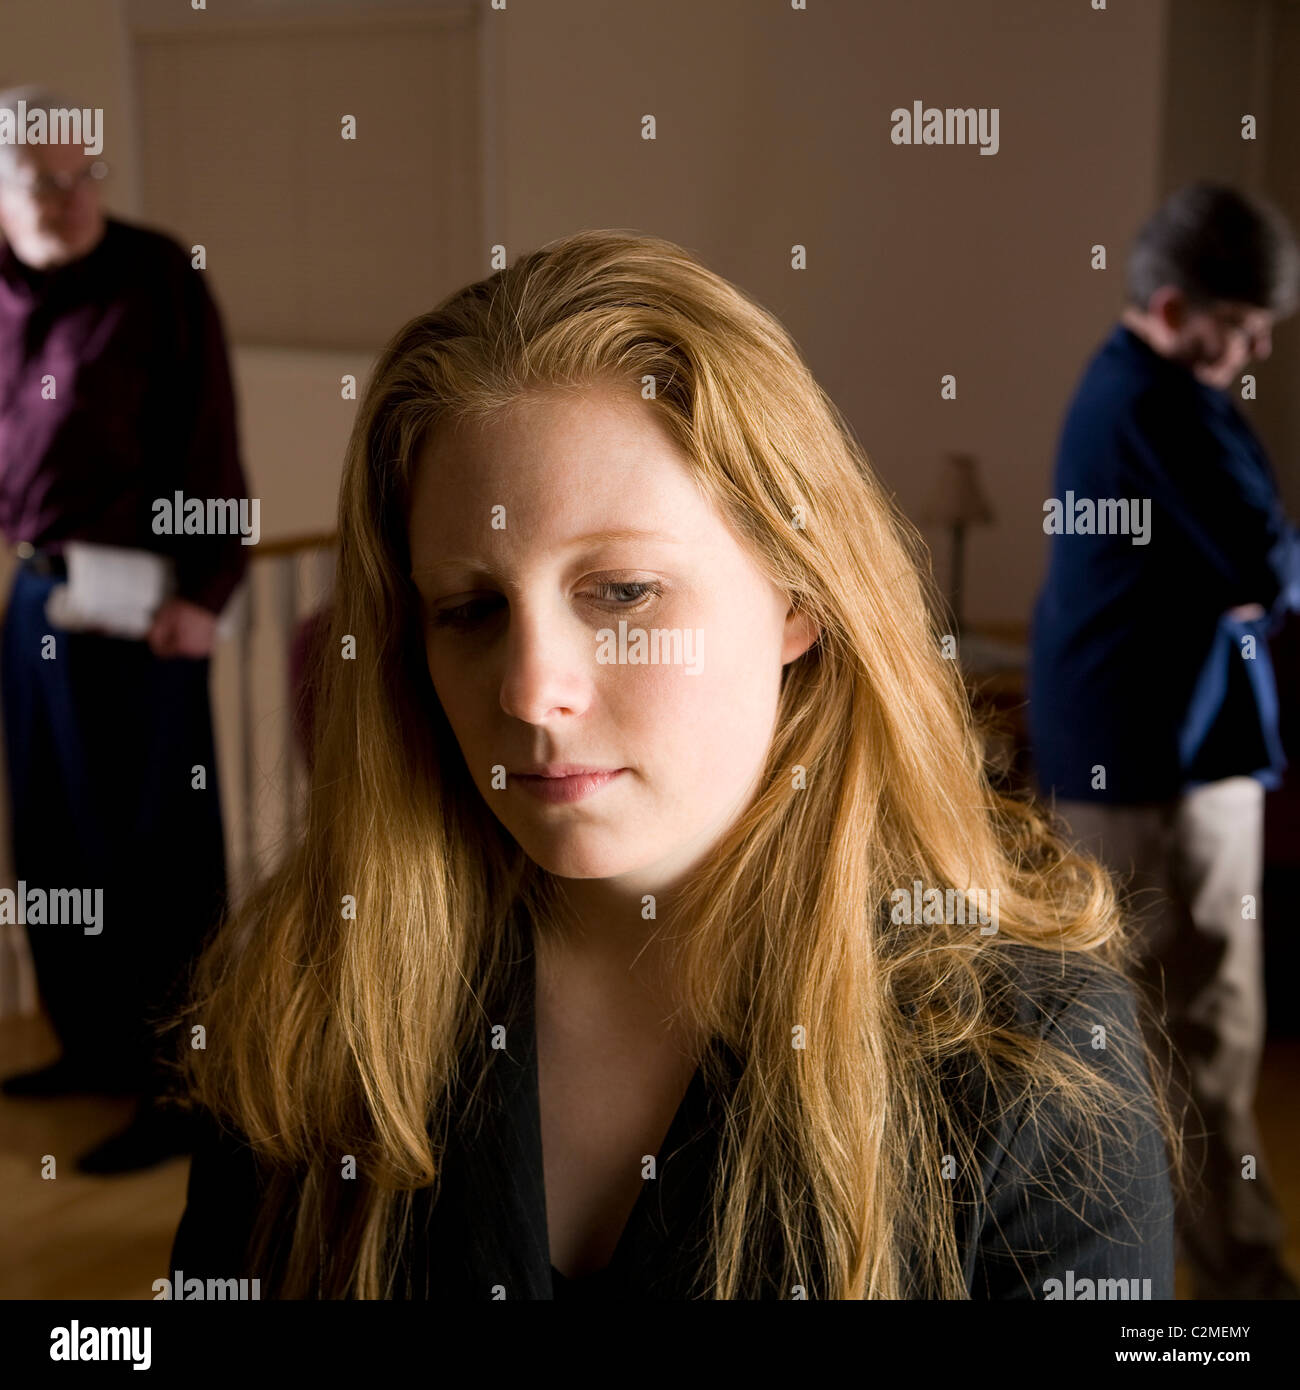 Family Fight; Sad Girl With Parents Fighting In Background - Stock Image